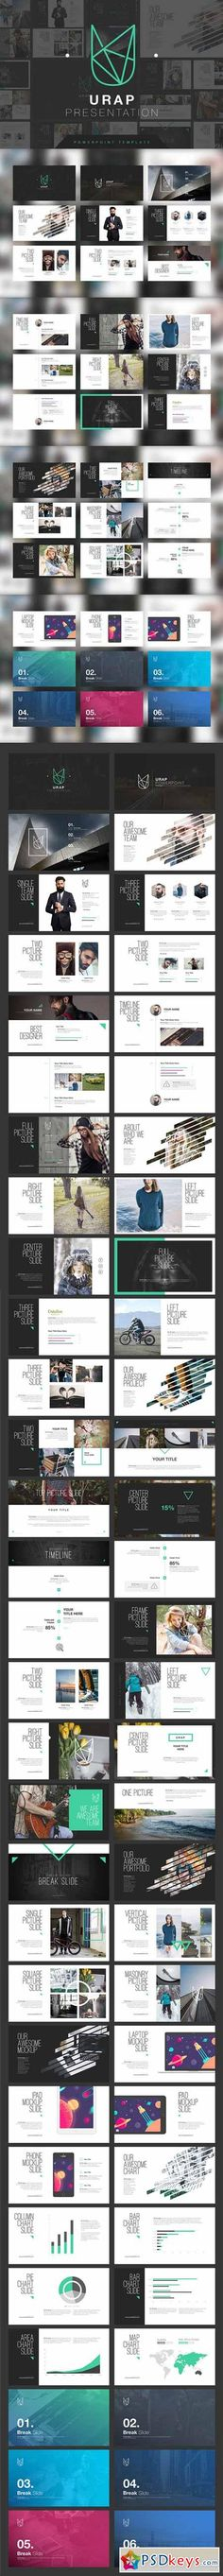 Modern architecture brochure 24 pages a4 a5 template indesign indd urap powerpoint template 604203 toneelgroepblik Choice Image